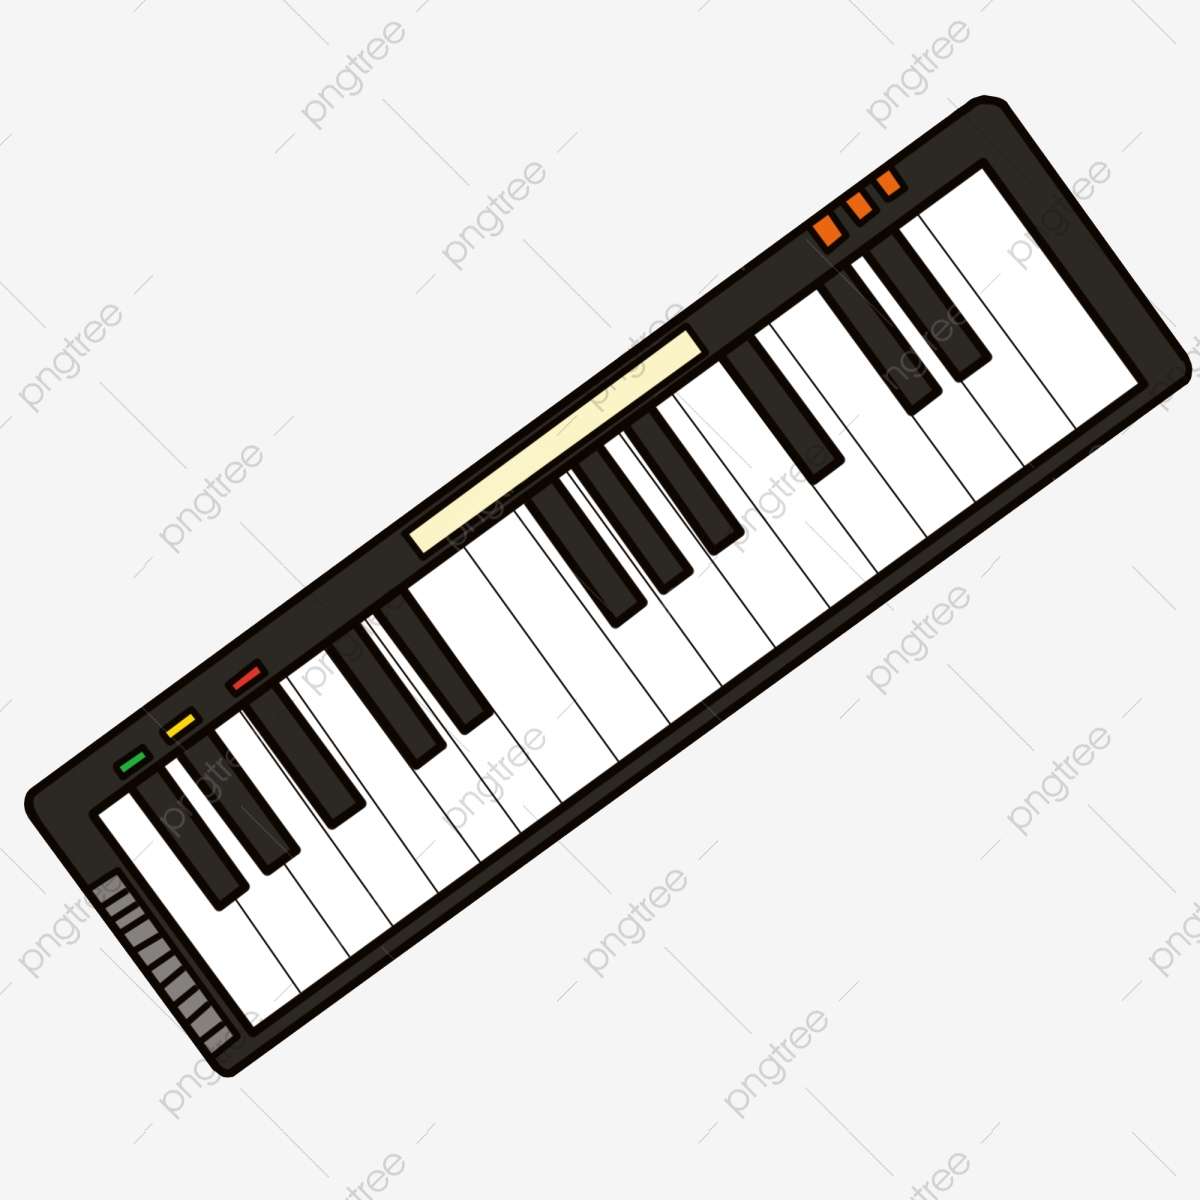 Keyboard Piano Png Images Vector And Psd Files Free Download On Pngtree